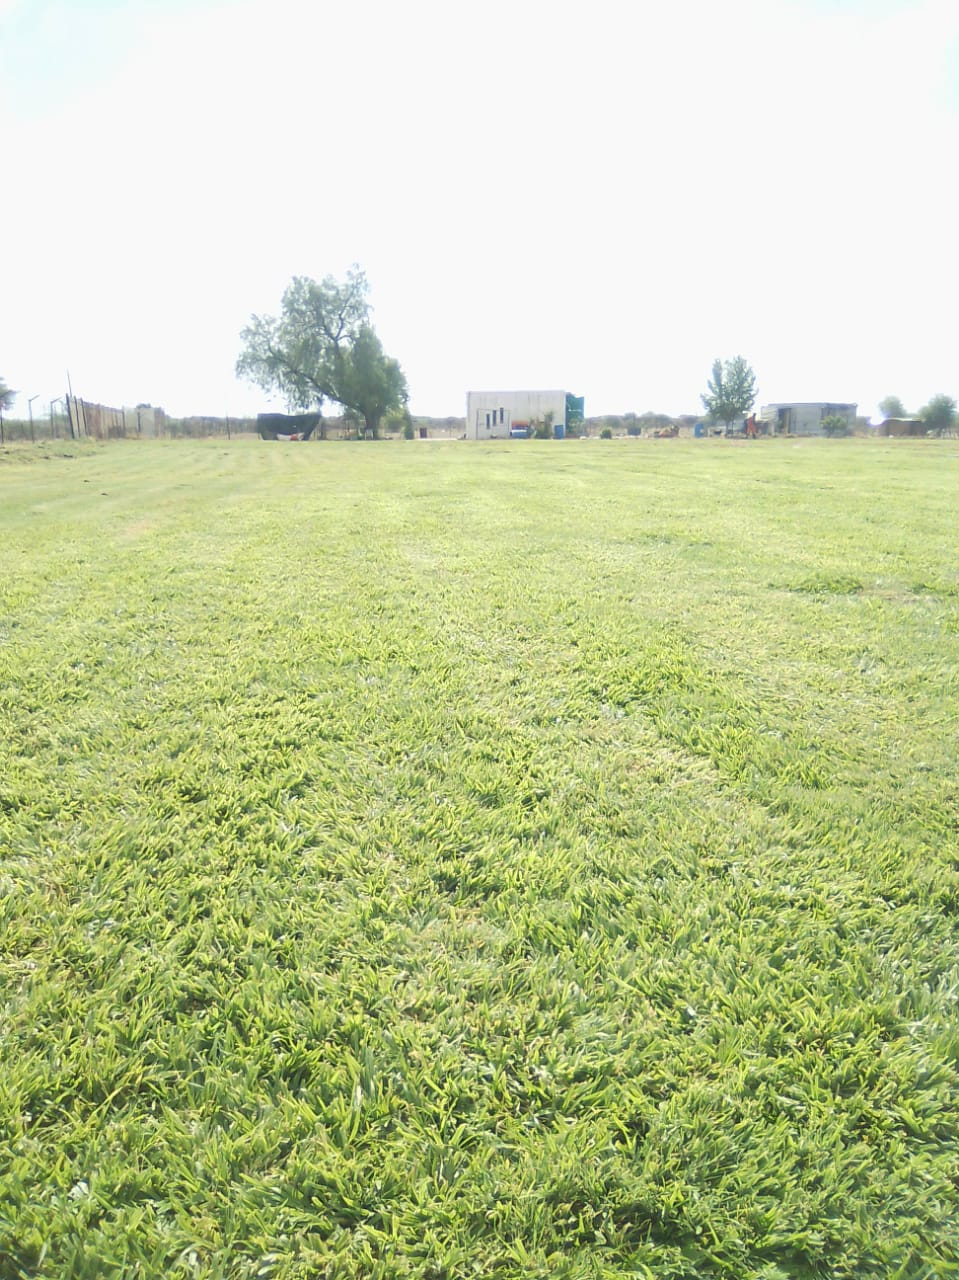 Instant lawn supply and installation,Tree felling and irrigation  call 0834707623